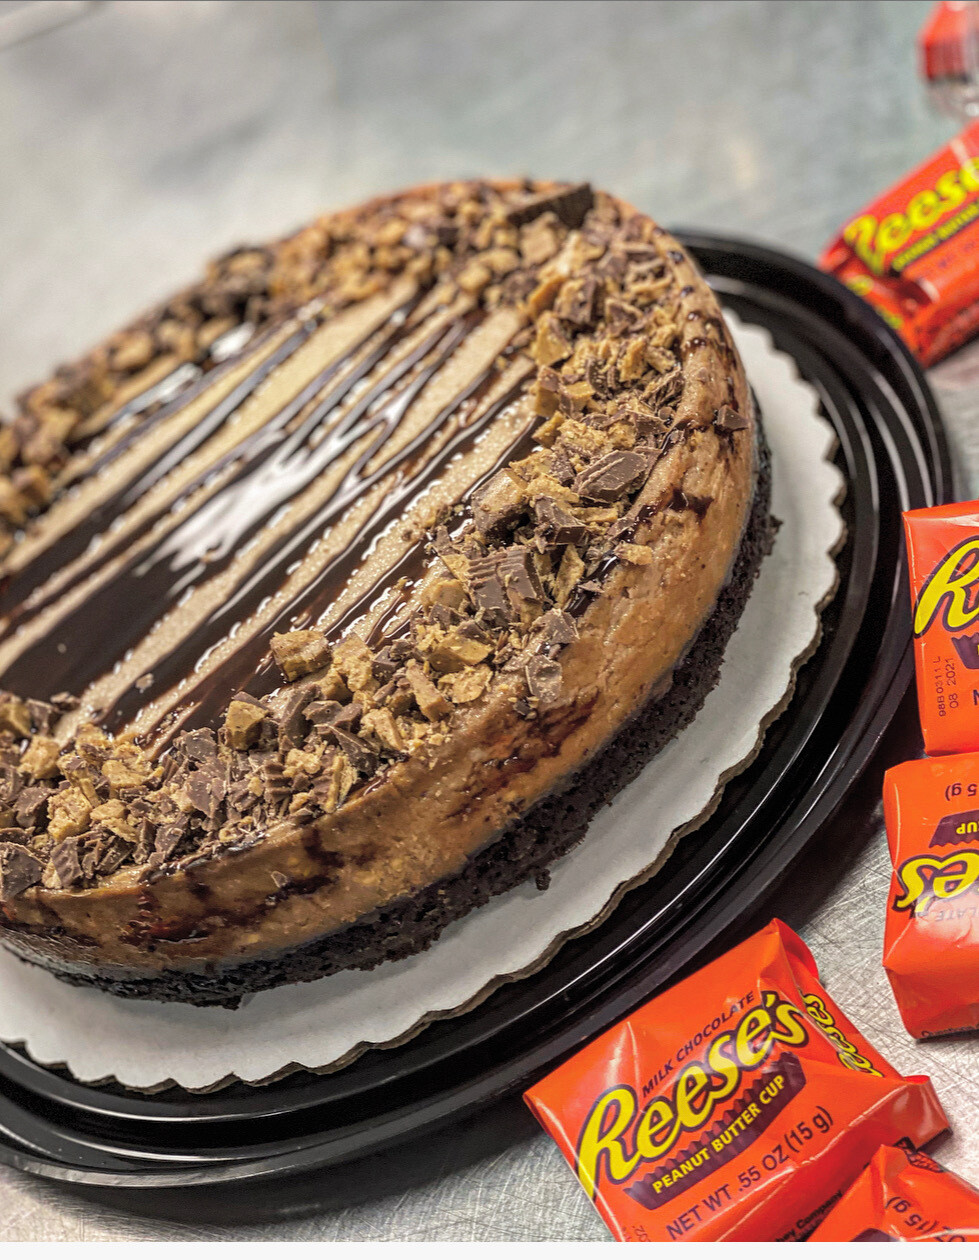 Brownie Bottom Reese's Cheesecake